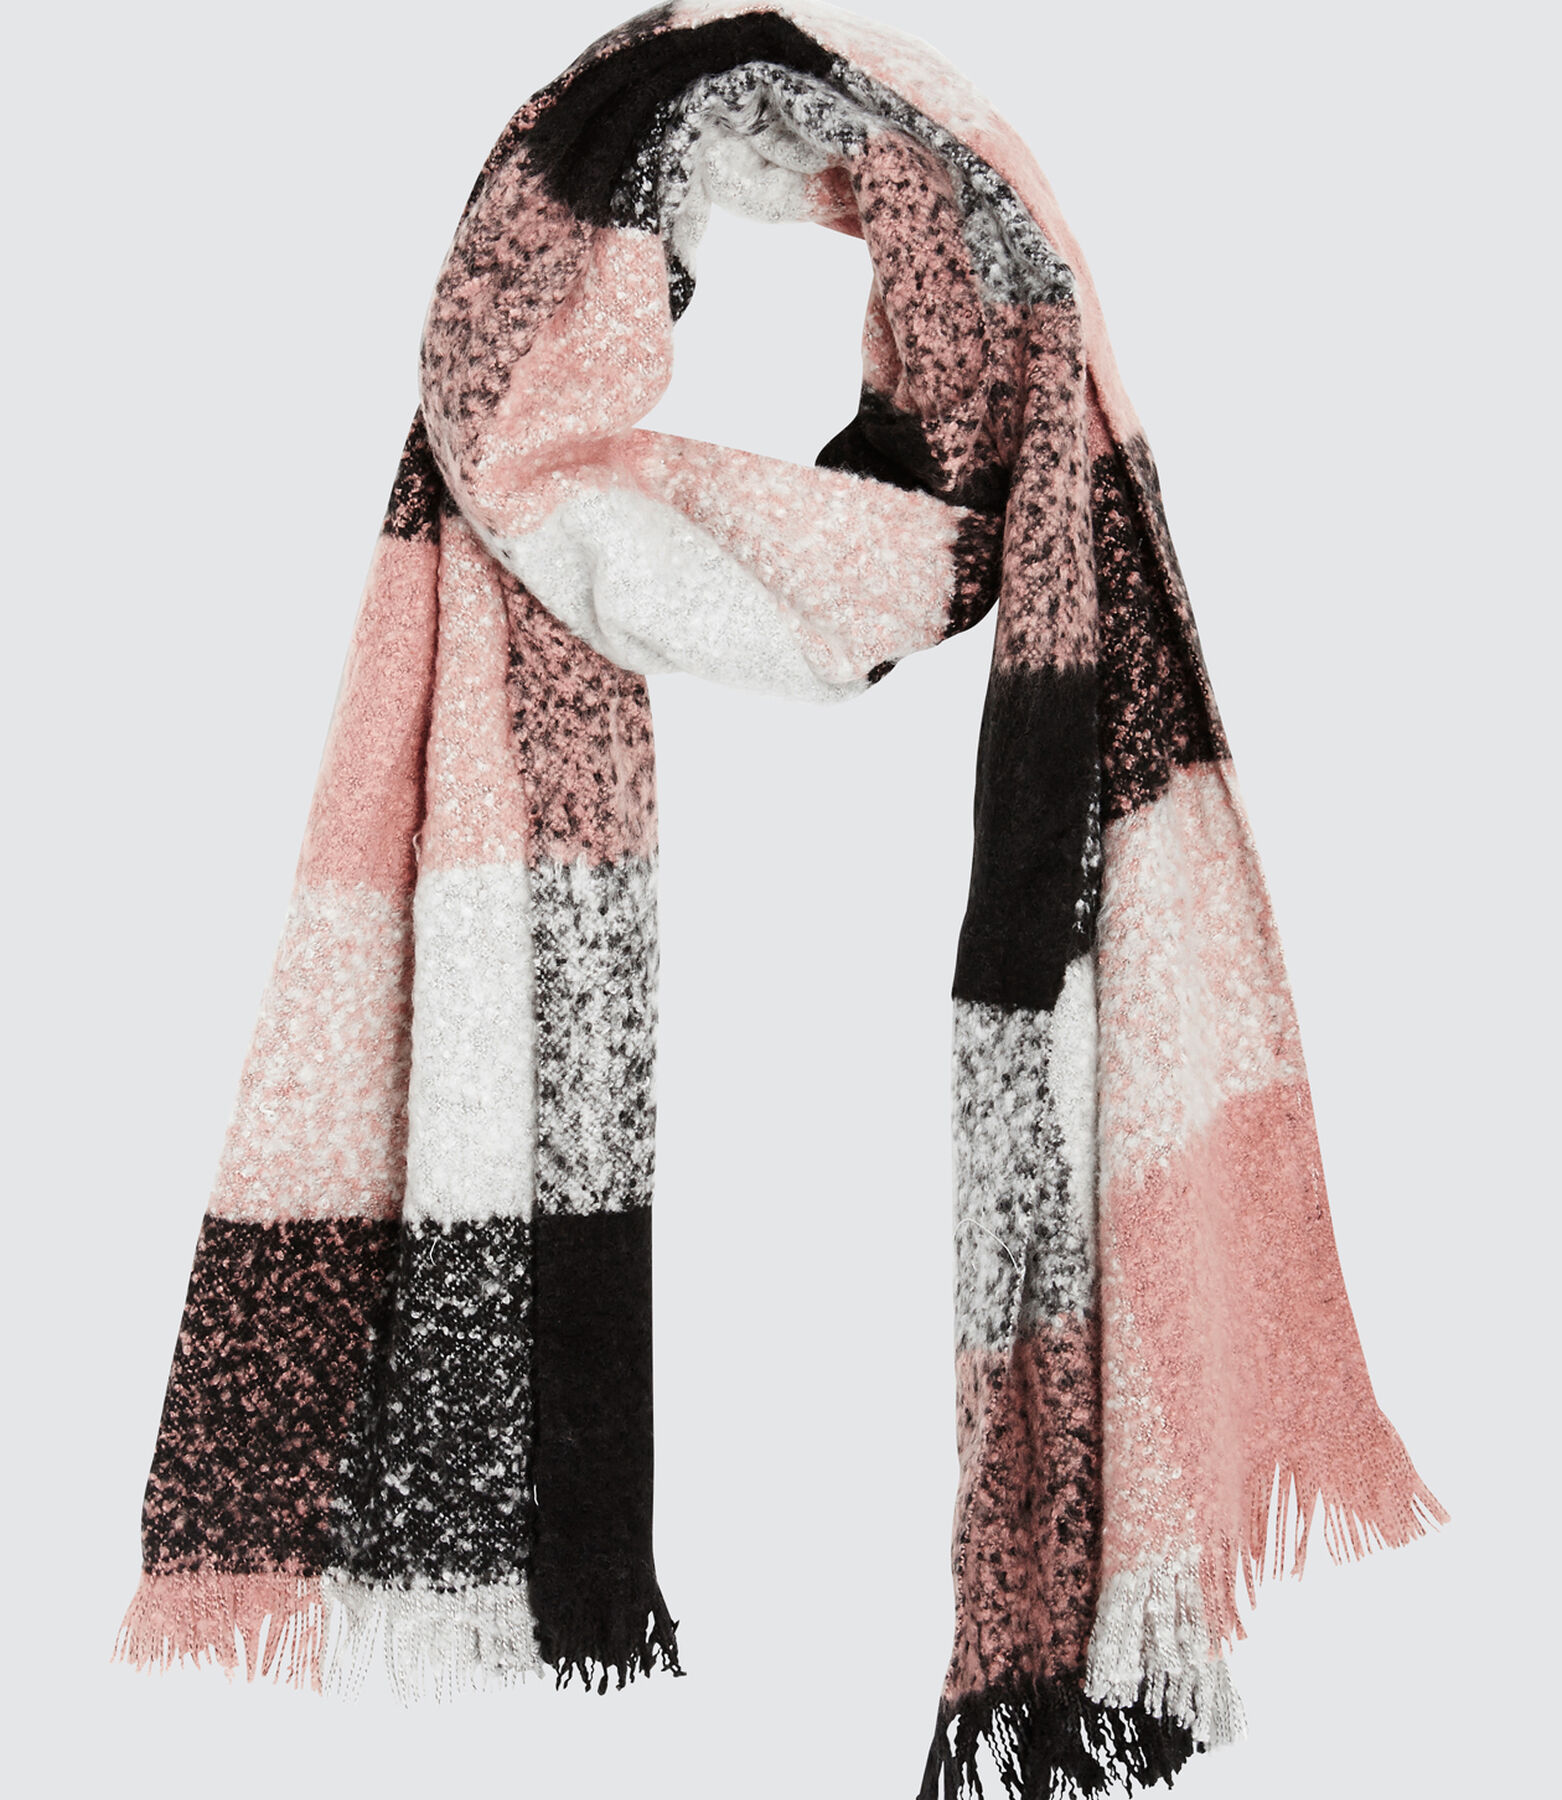 Foulard Chaud Carreaux